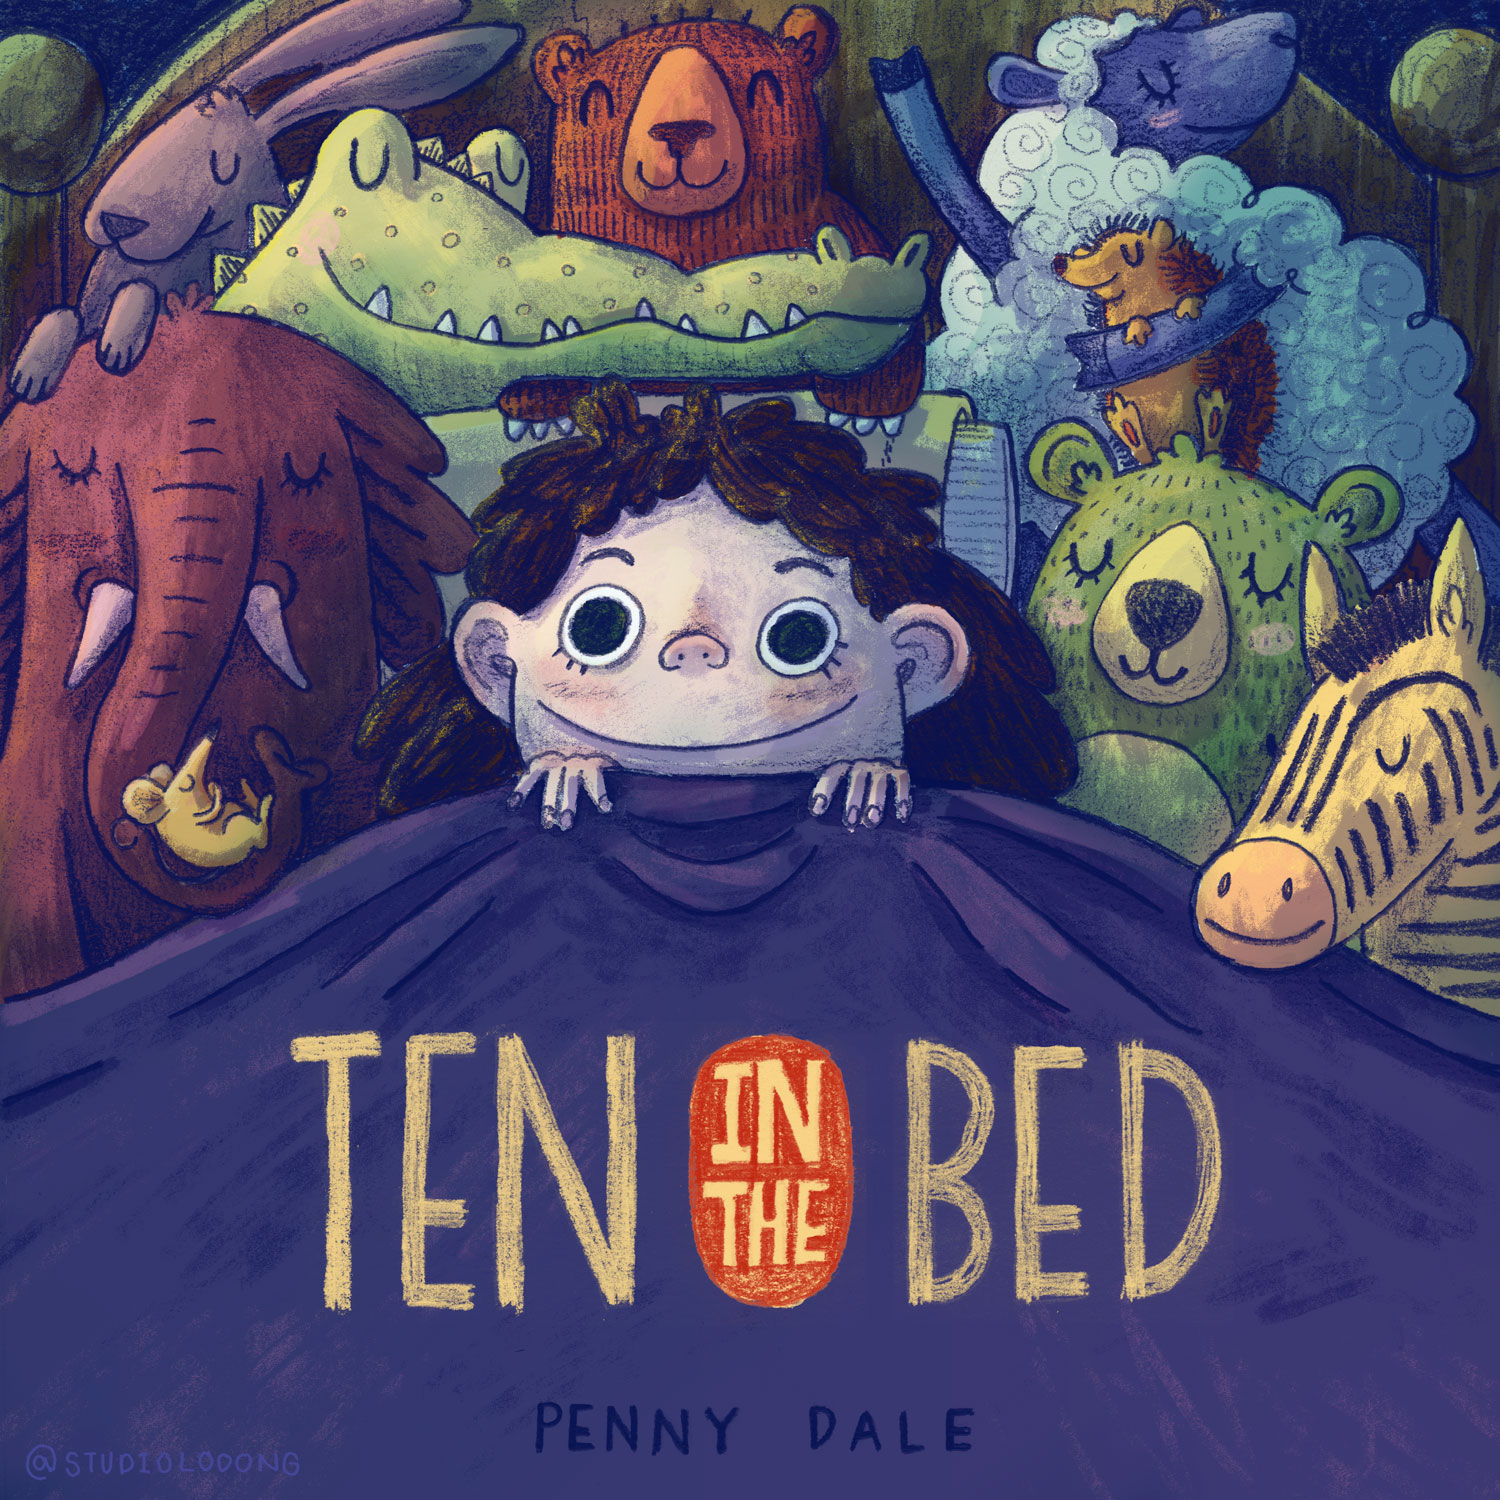 ten in the bed cover design children's book illustration champaign Illinois midwest